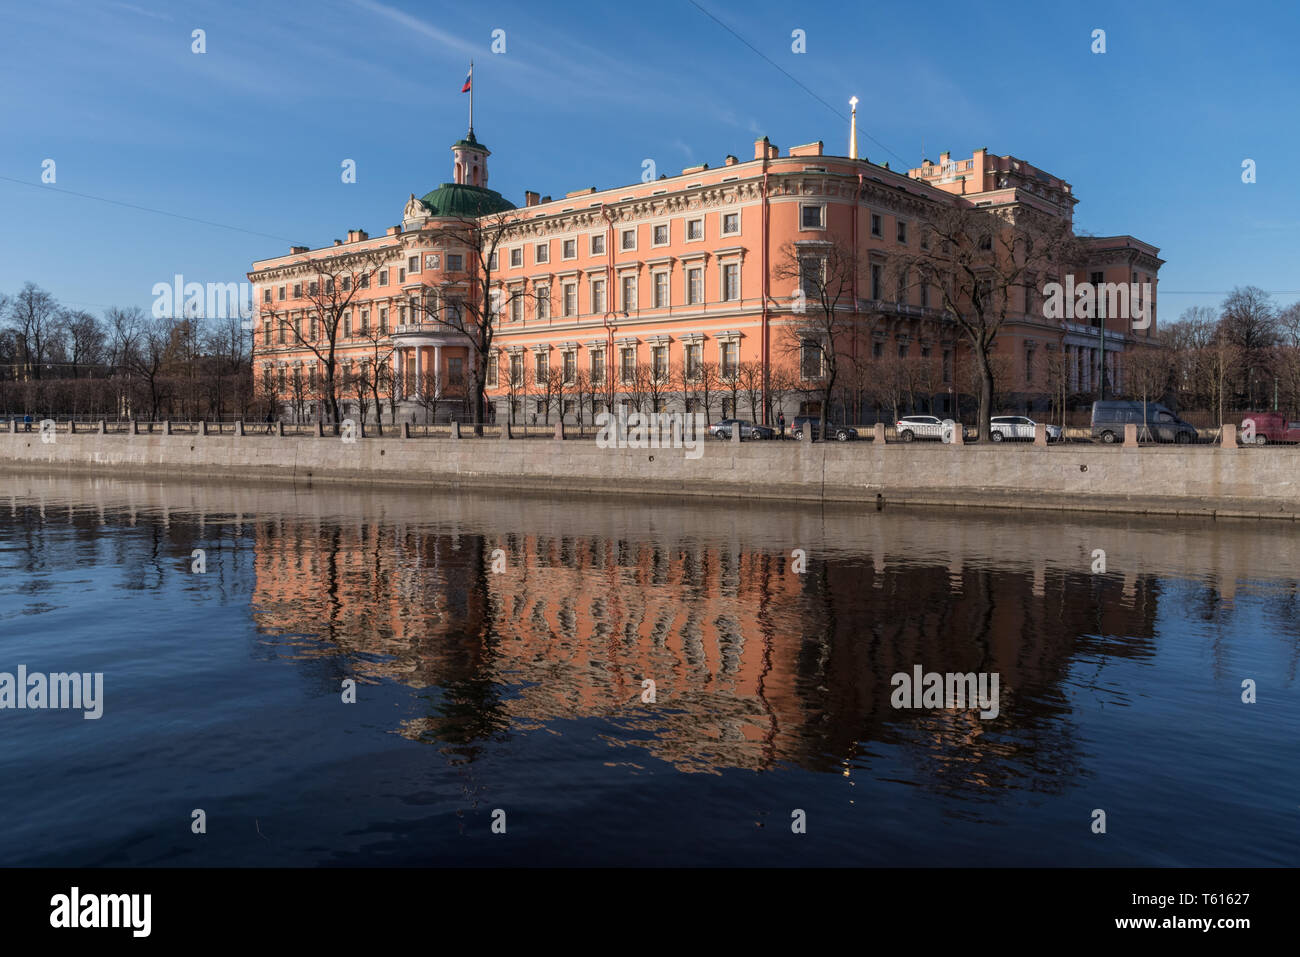 The facade of the Mikhailovsky (engineers') castle and the river Moika in Saint-Petersburg, Russia - Stock Image